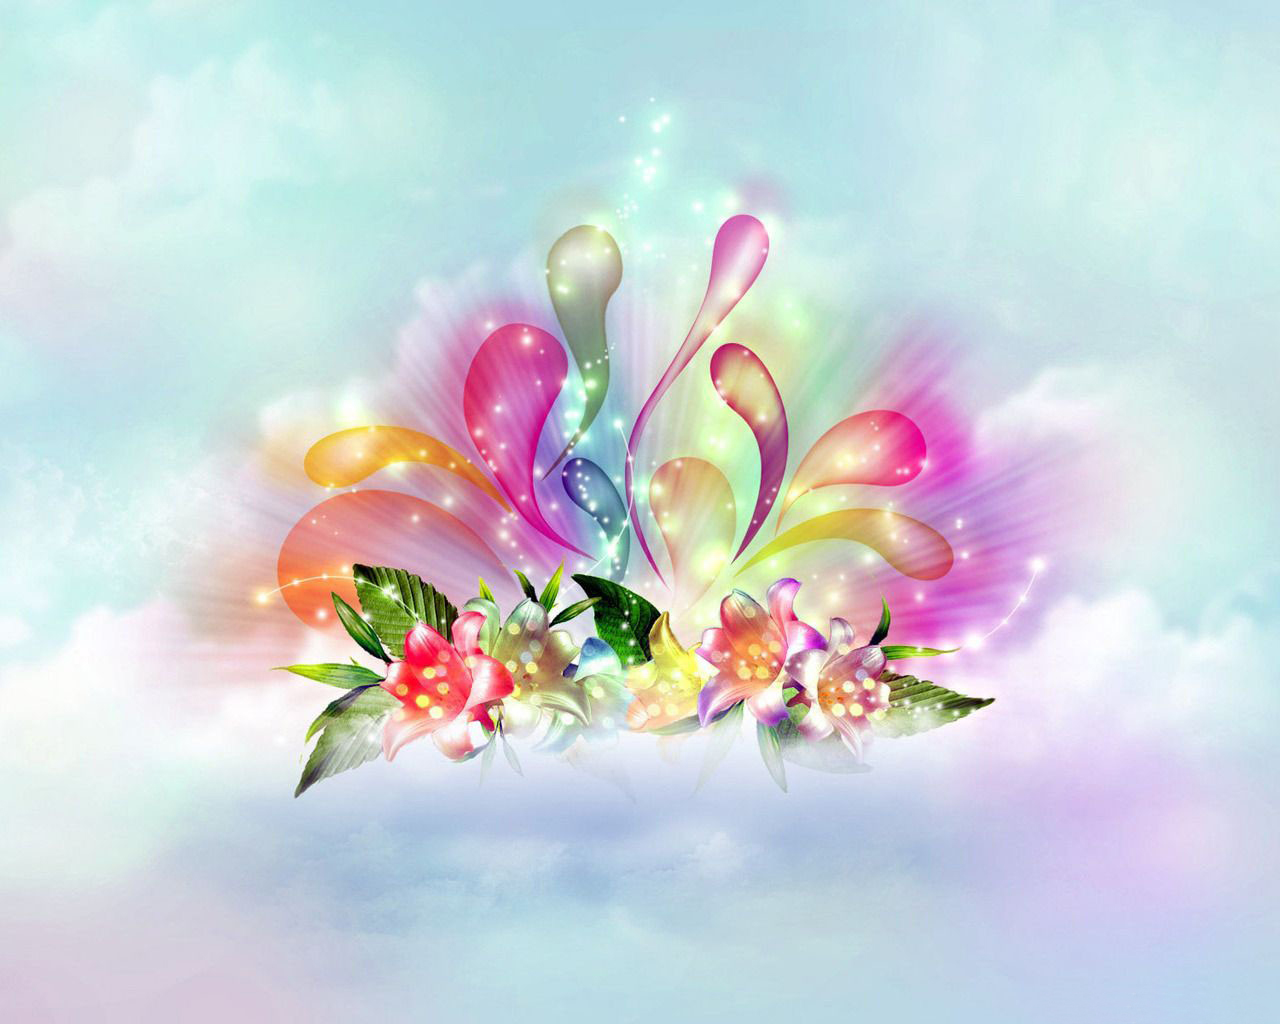 Color Wallpapers For Desktop 3D background for your background 3D 1280x1024